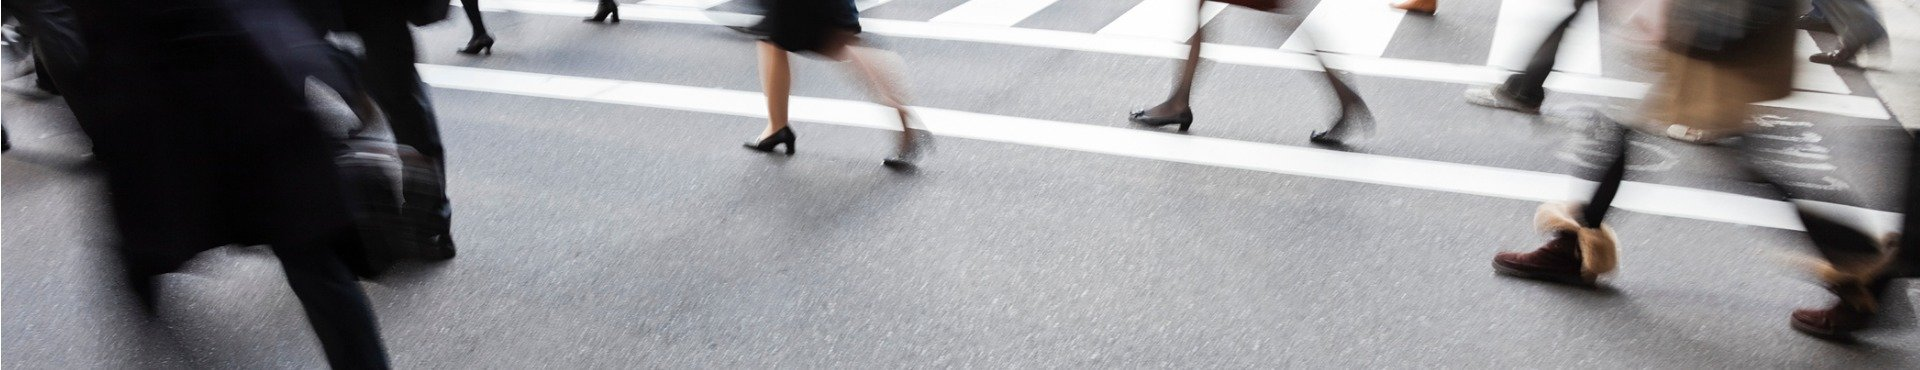 Pedestrian compensation claims | Shine Lawyers